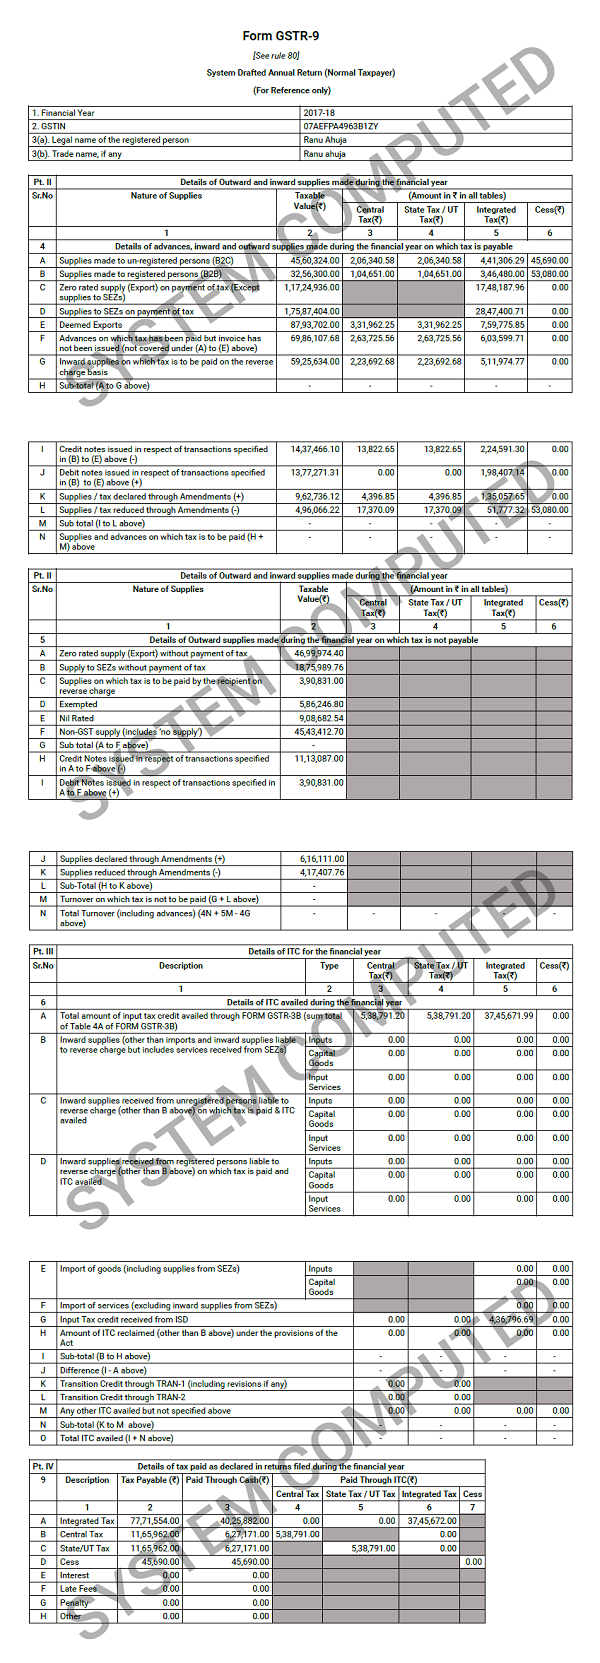 How to file Form GSTR-9 (GST annual return) images 9